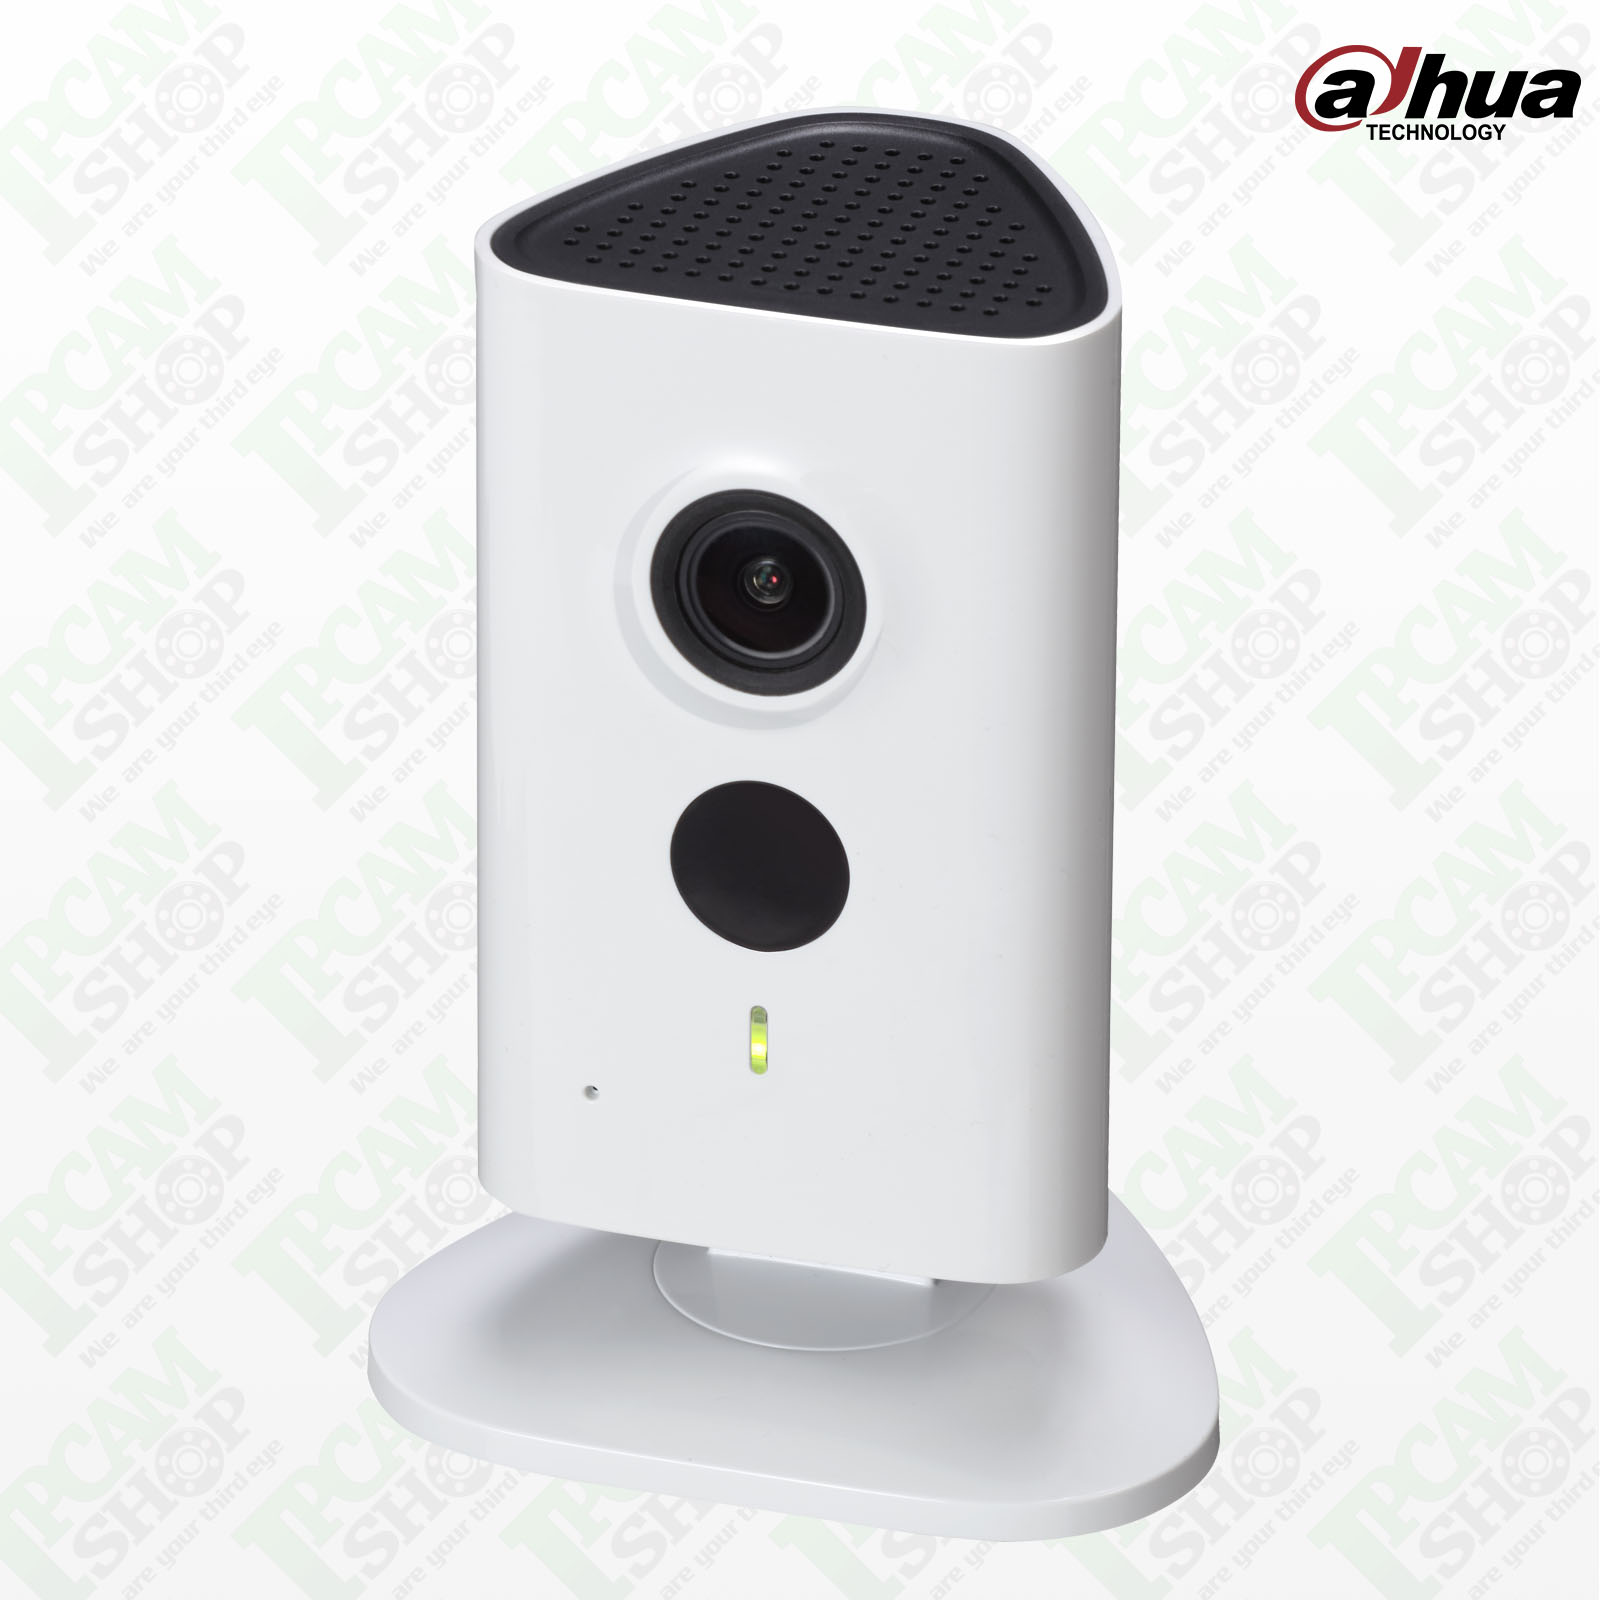 Dahua IPC-C35 HD 3MP Wi-Fi Network Camera Built-in Mic & Speaker